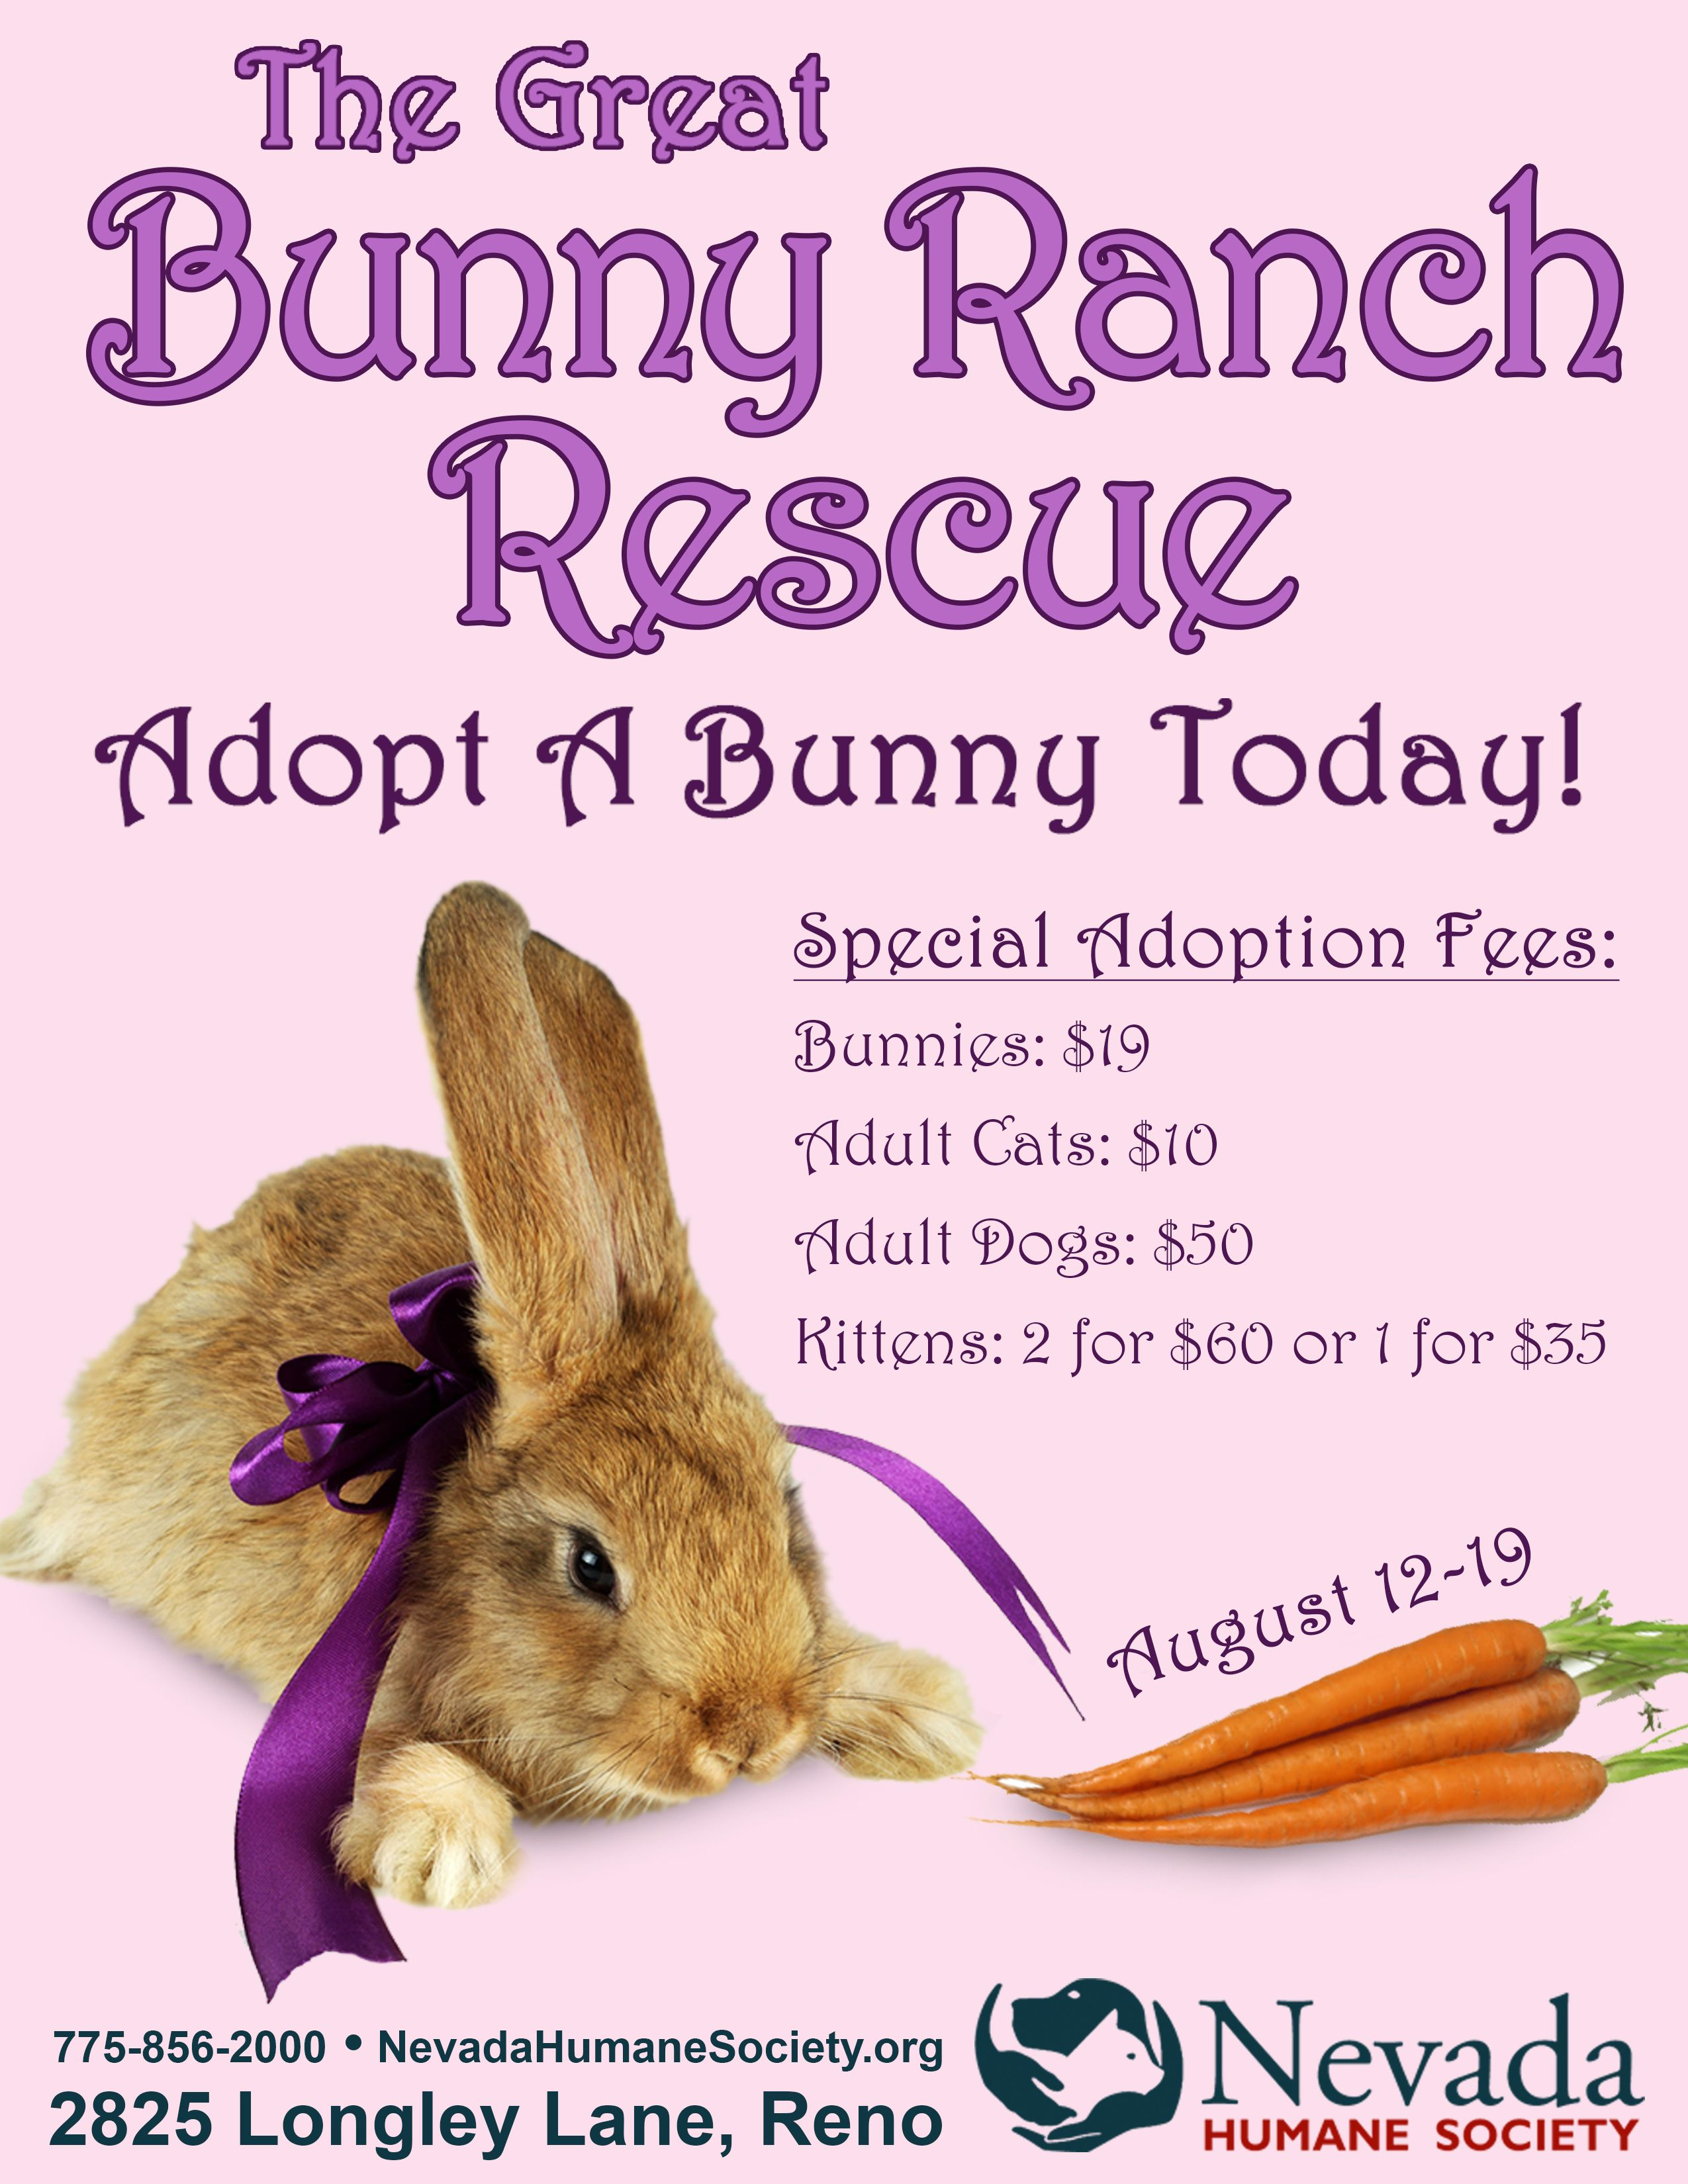 The Great Bunny Ranch Rescue Yup This Is Our Play On The Nevada Brothel And Low And Behold The Moonlight Bunny Ranch Ev Nevada Adopt A Bunny Rabbit Adoption